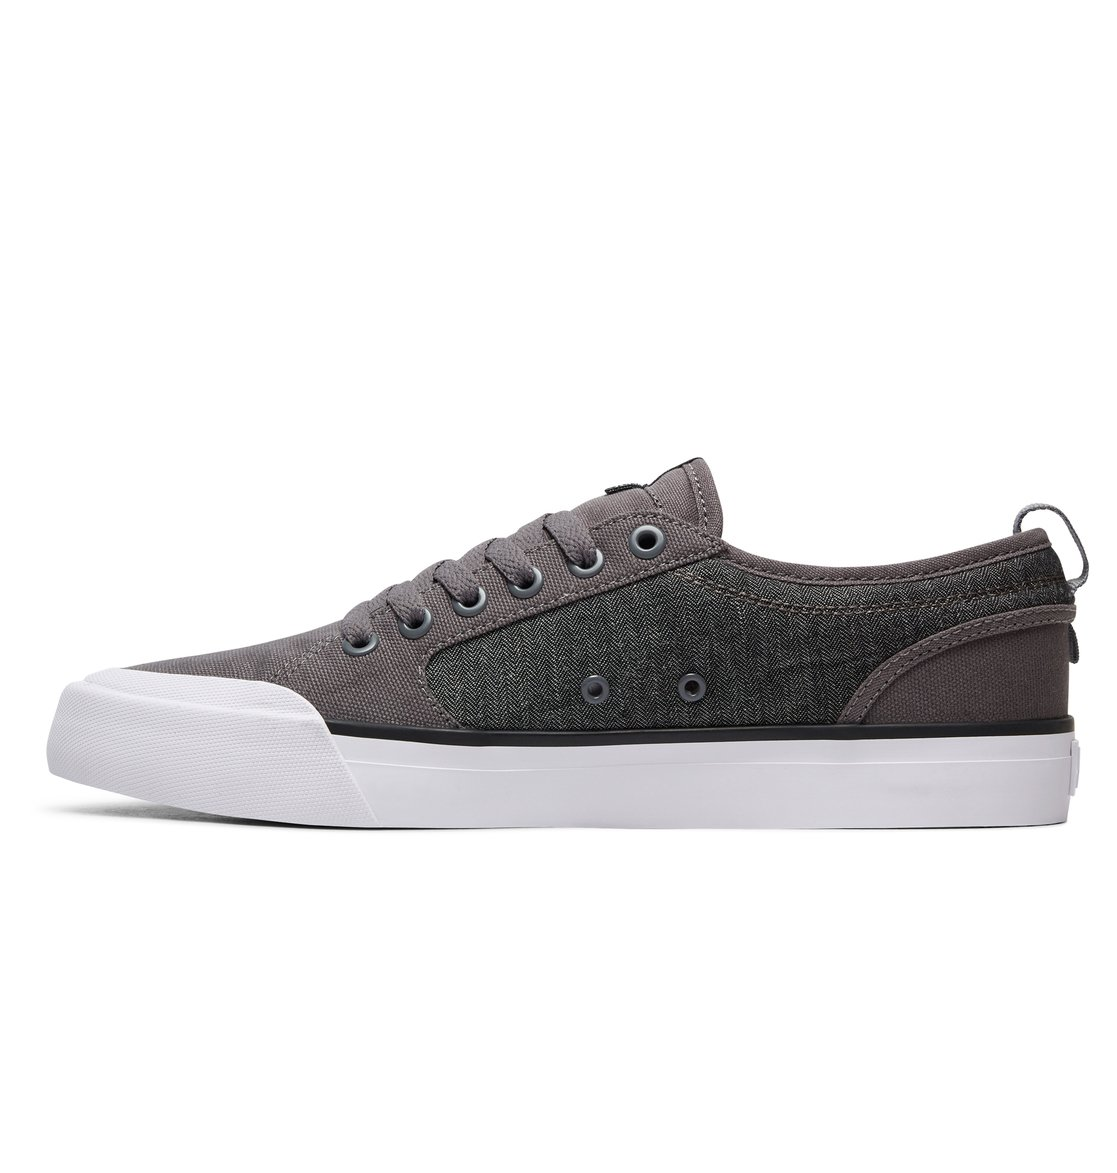 DC Shoes Evan Smith TX - Shoes - Zapatillas - Hombre - EU 46